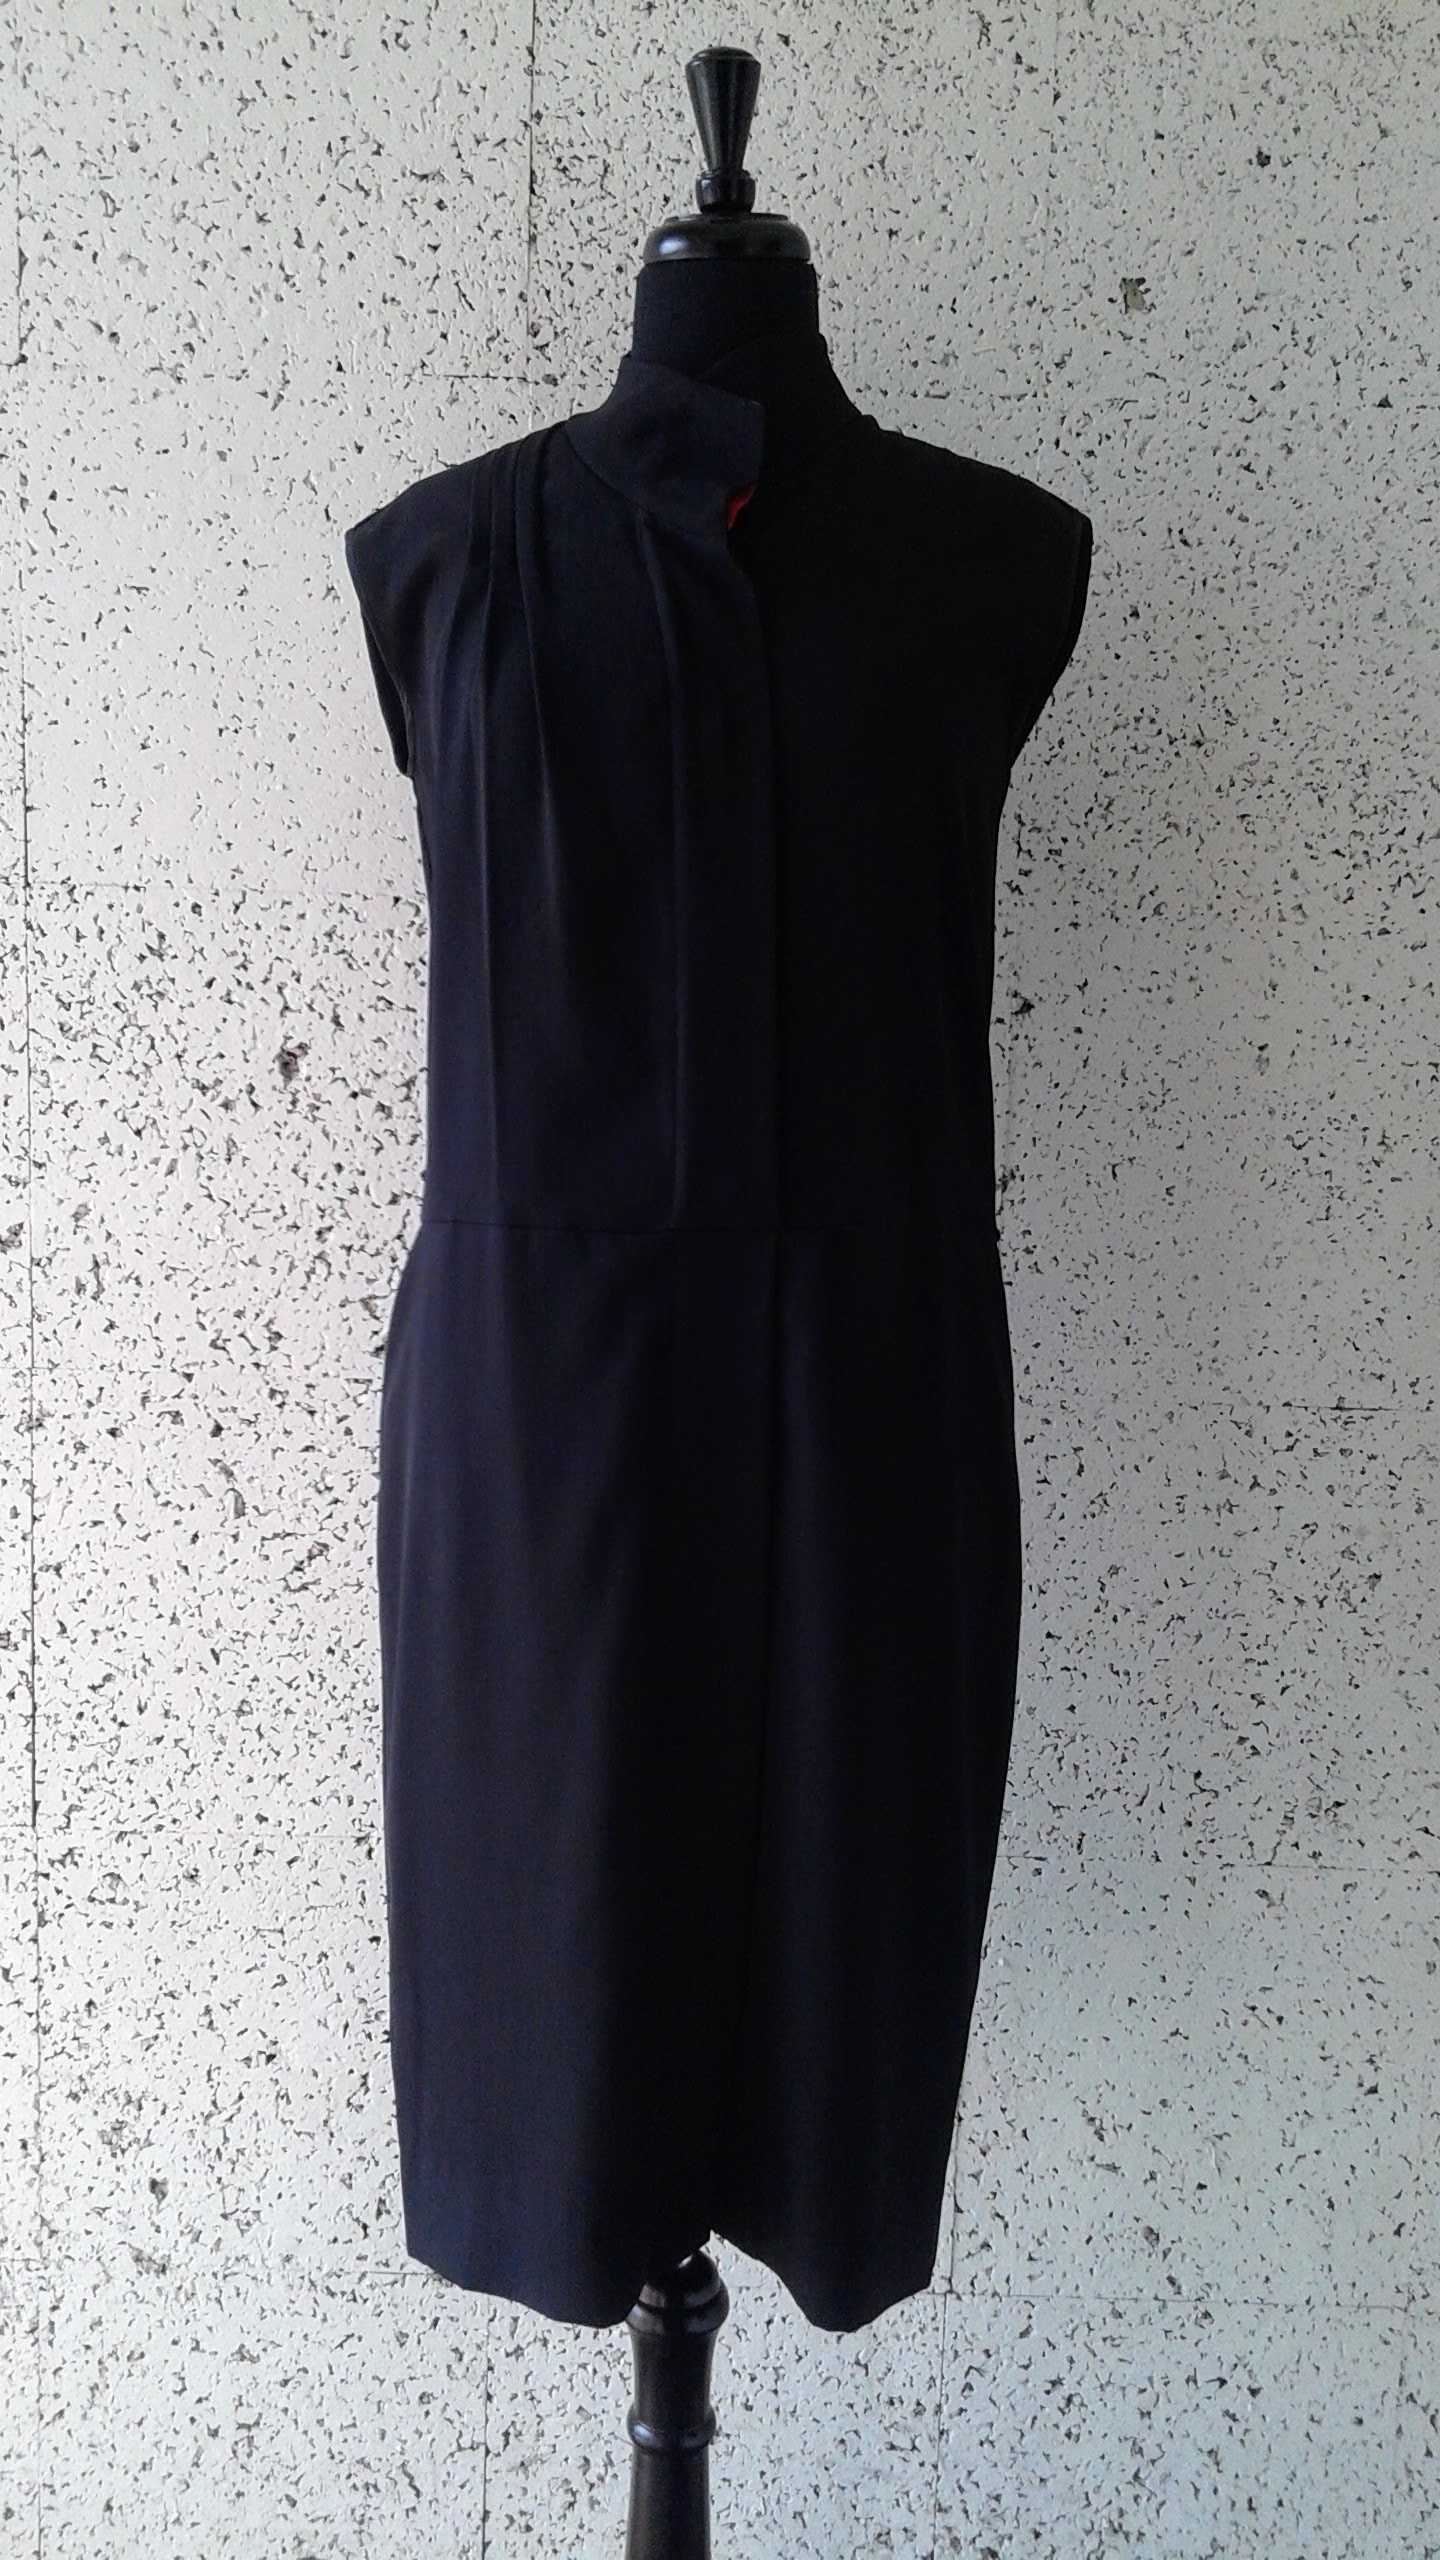 BCBG dress; Size M, $58